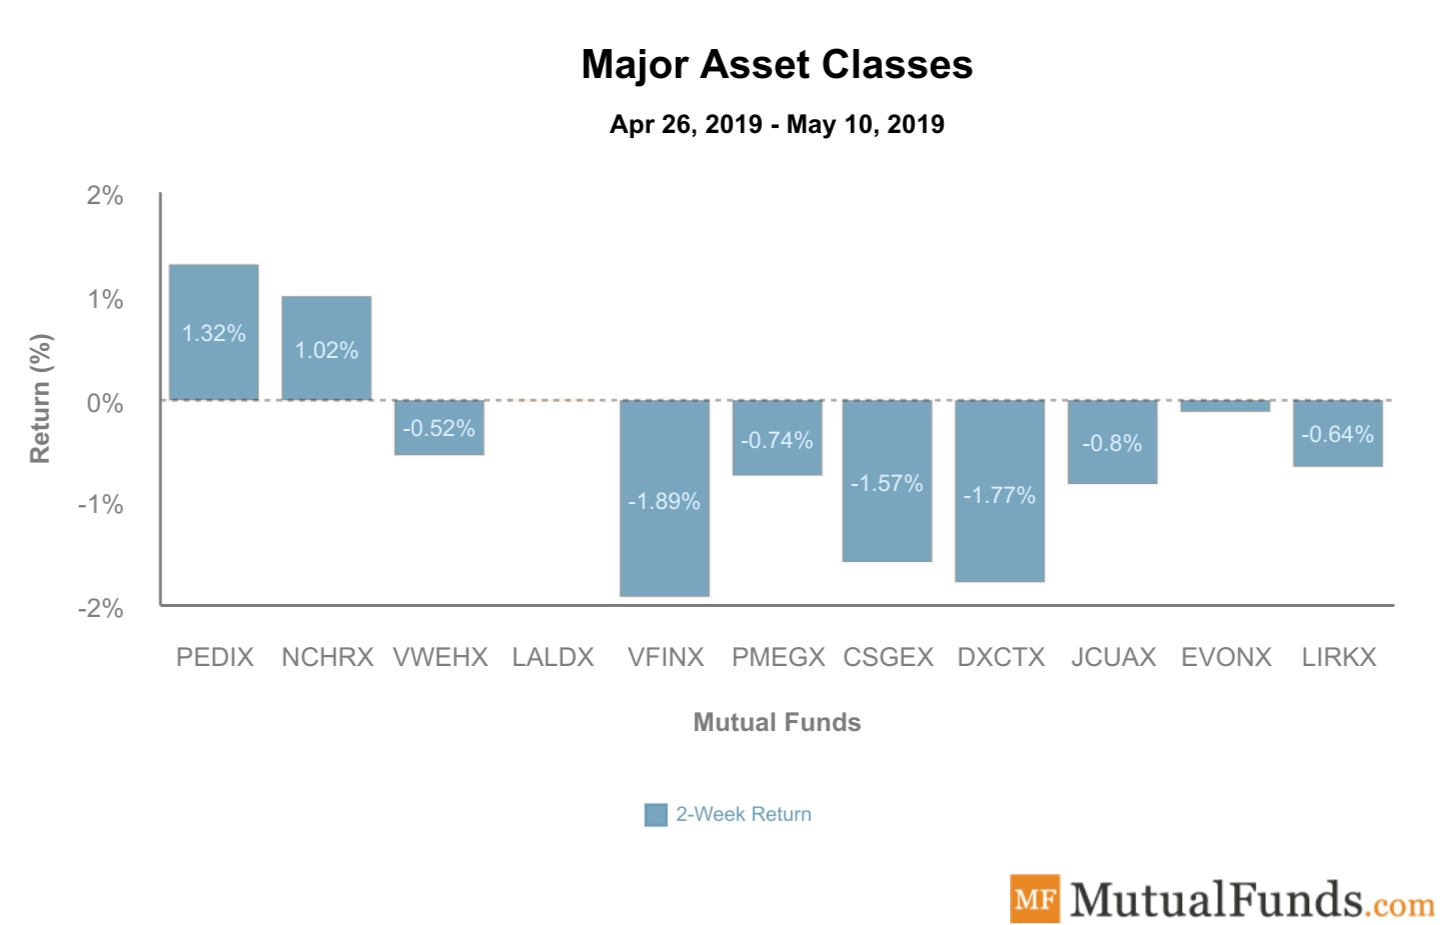 Major Asset Classes Performance May 14